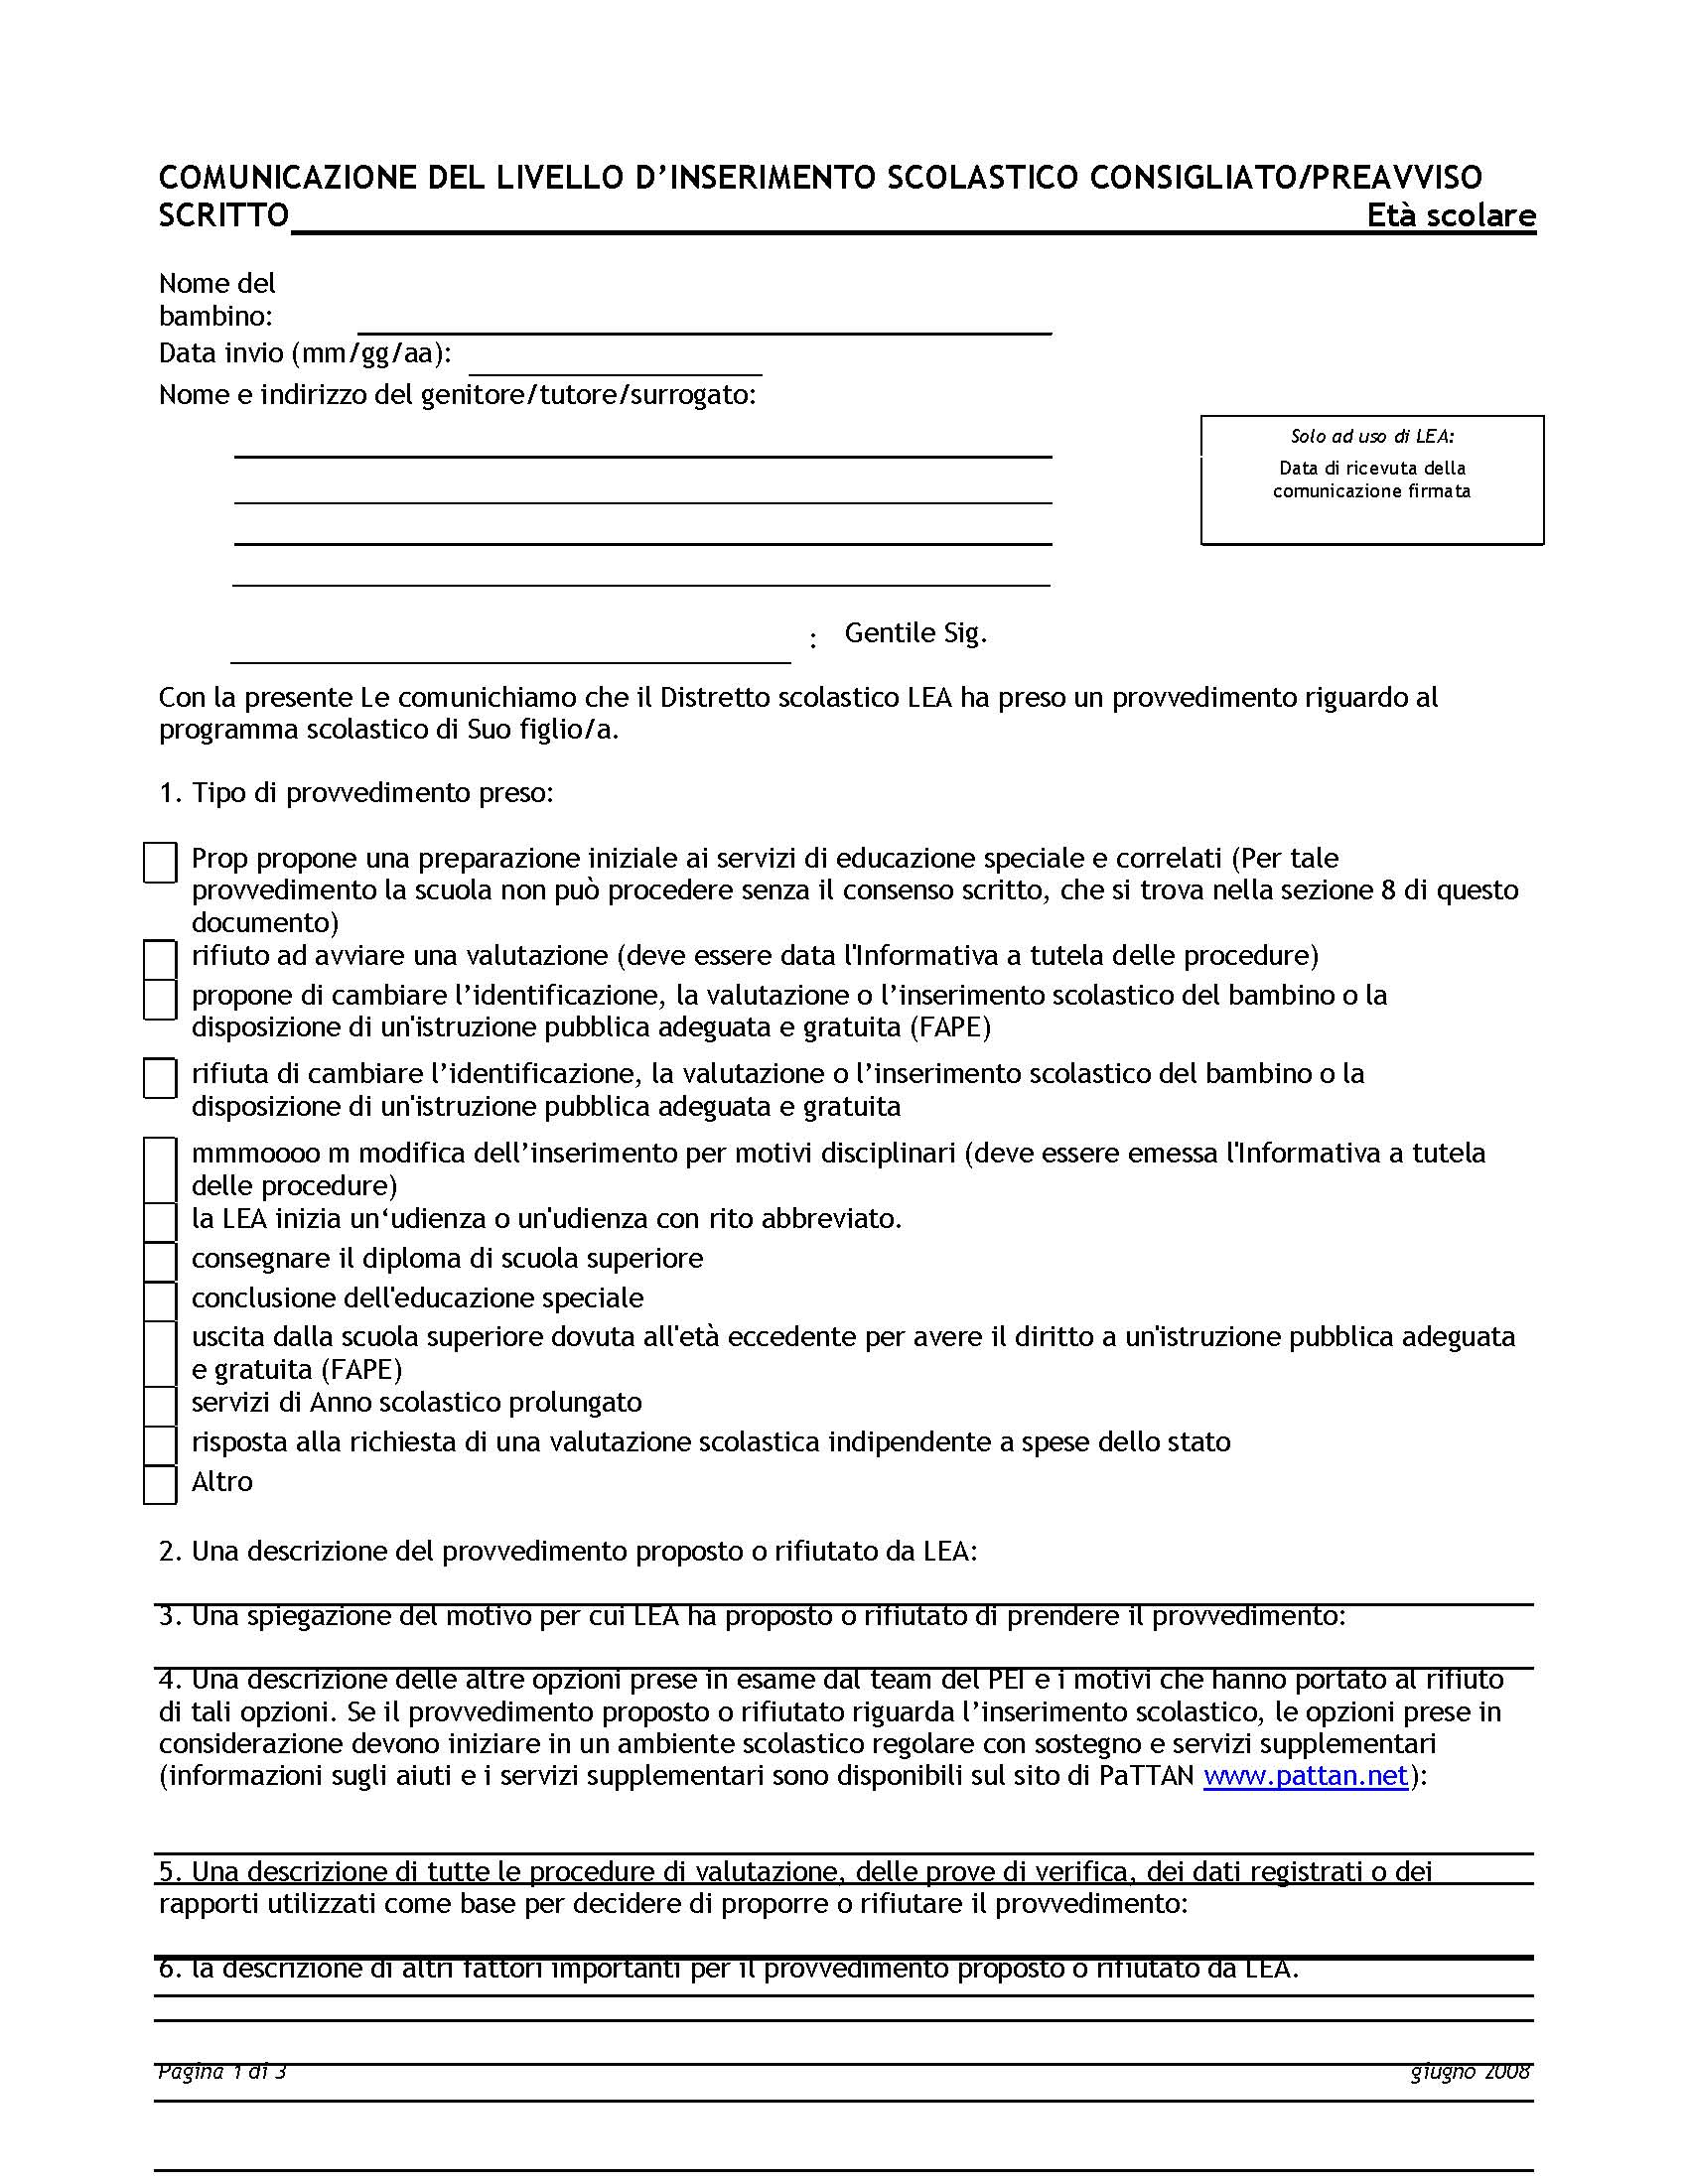 NOTICE OF RECOMMENDED EDUCATIONAL PLACEMENT/PRIOR WRITTEN NOTICE (NOREP/PWN) - School Age - Italian